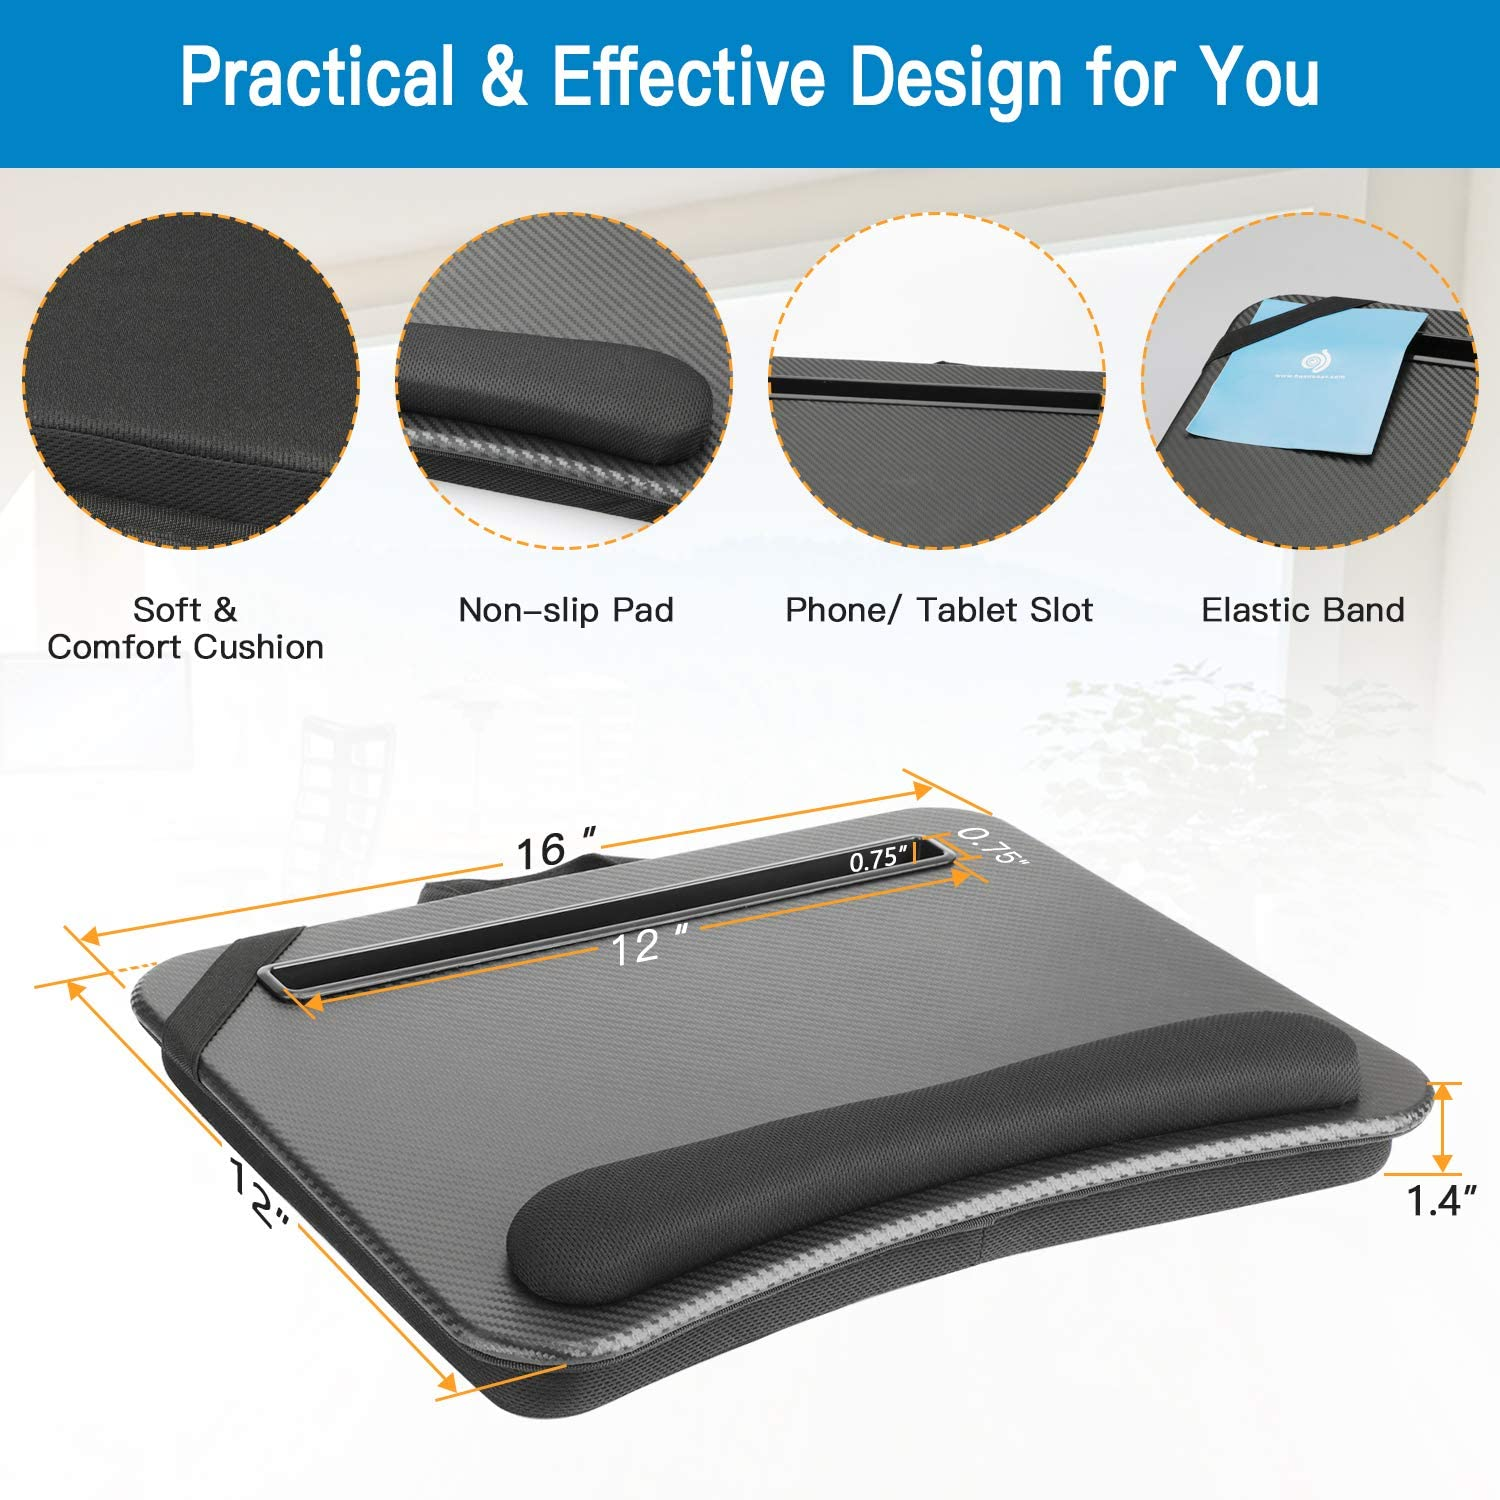 HUANUO Laptop Lap Desk - Fits up to 14 inches Laptop Stand with Phone Holder, Tablet Holder, Portable Lap Desk Built-in Soft Foam Pillow Cushion, Elastic Band,Laptop Stop Bar : Office Products